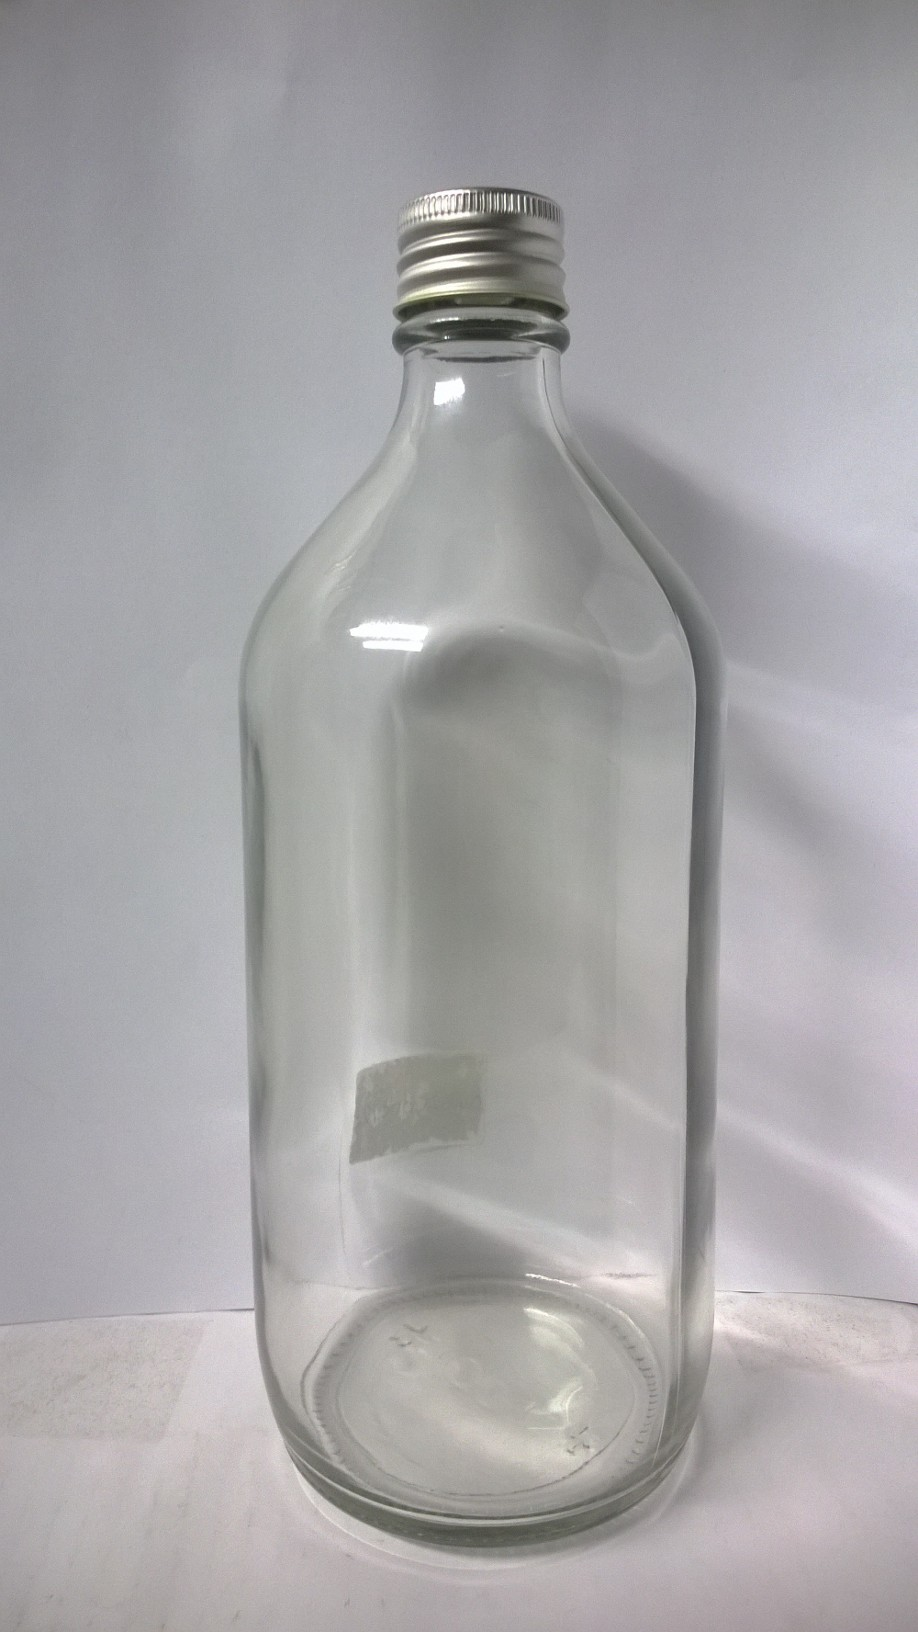 Winchester Clear Glass Bottles 1 Litre Welcome To